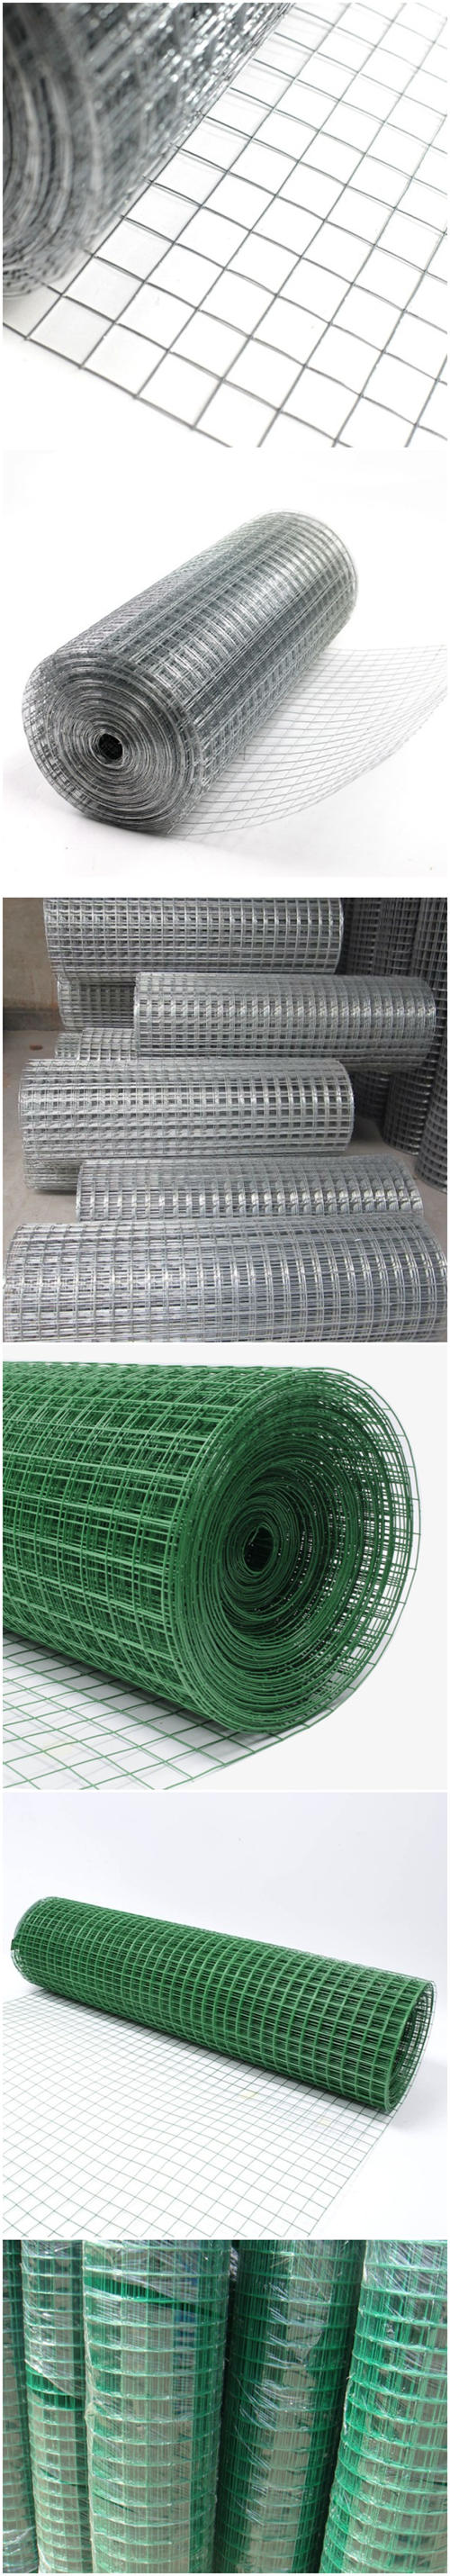 2016 Hot Sale Welded Wire Fabric China Low Price